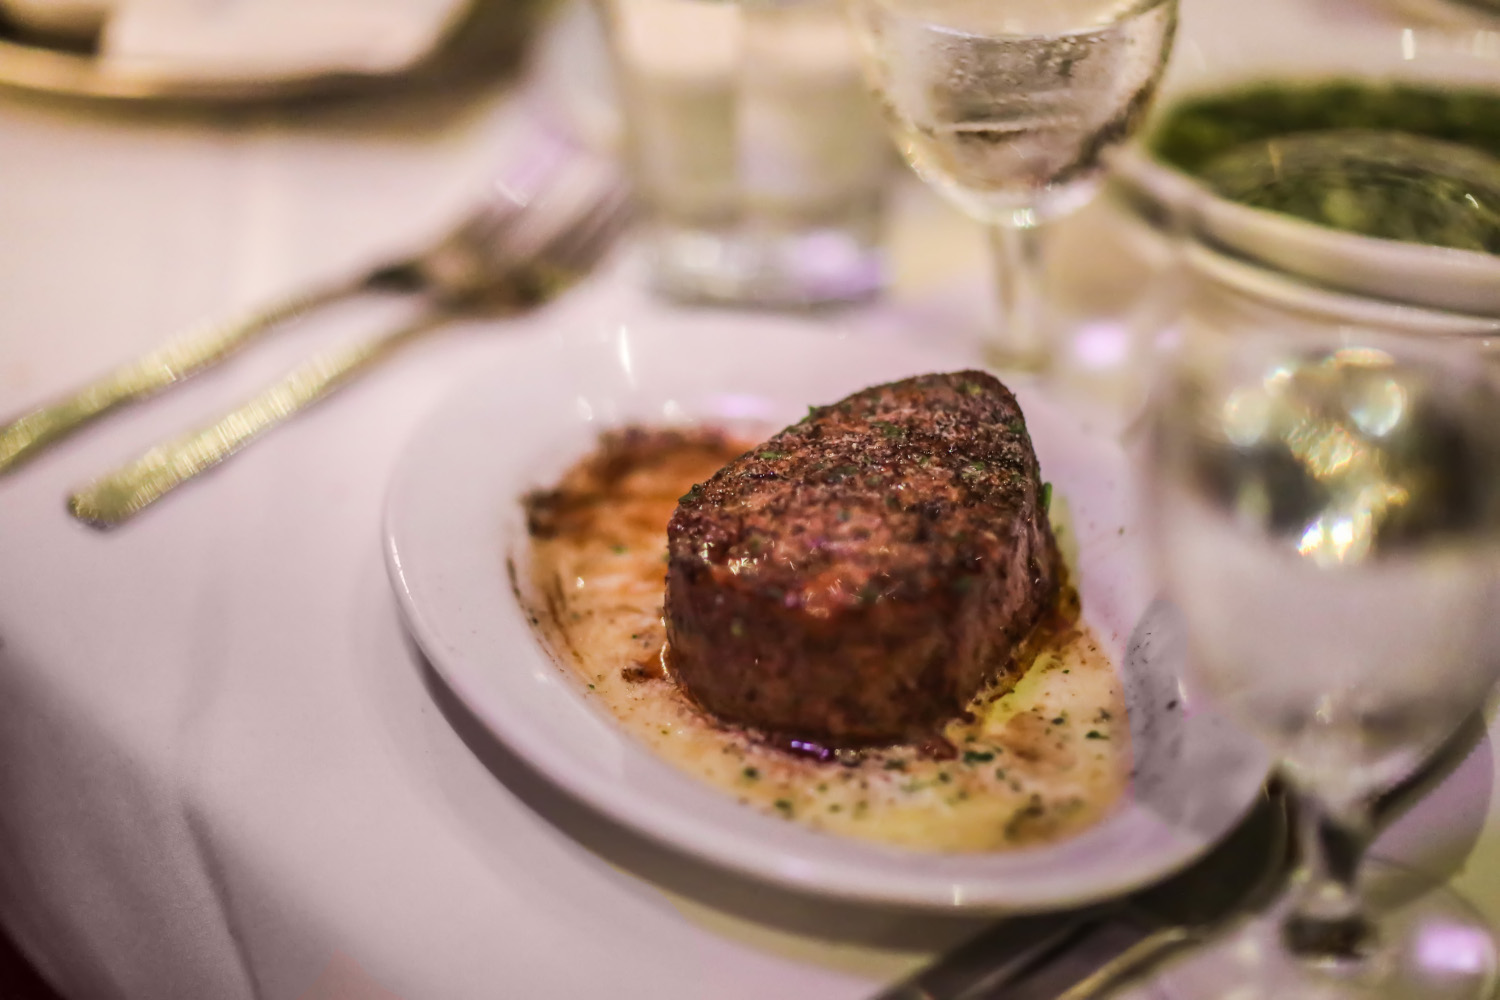 Fine Dining Without An Attitude Ruth's Chris Steak House at Anaheim Restaurant